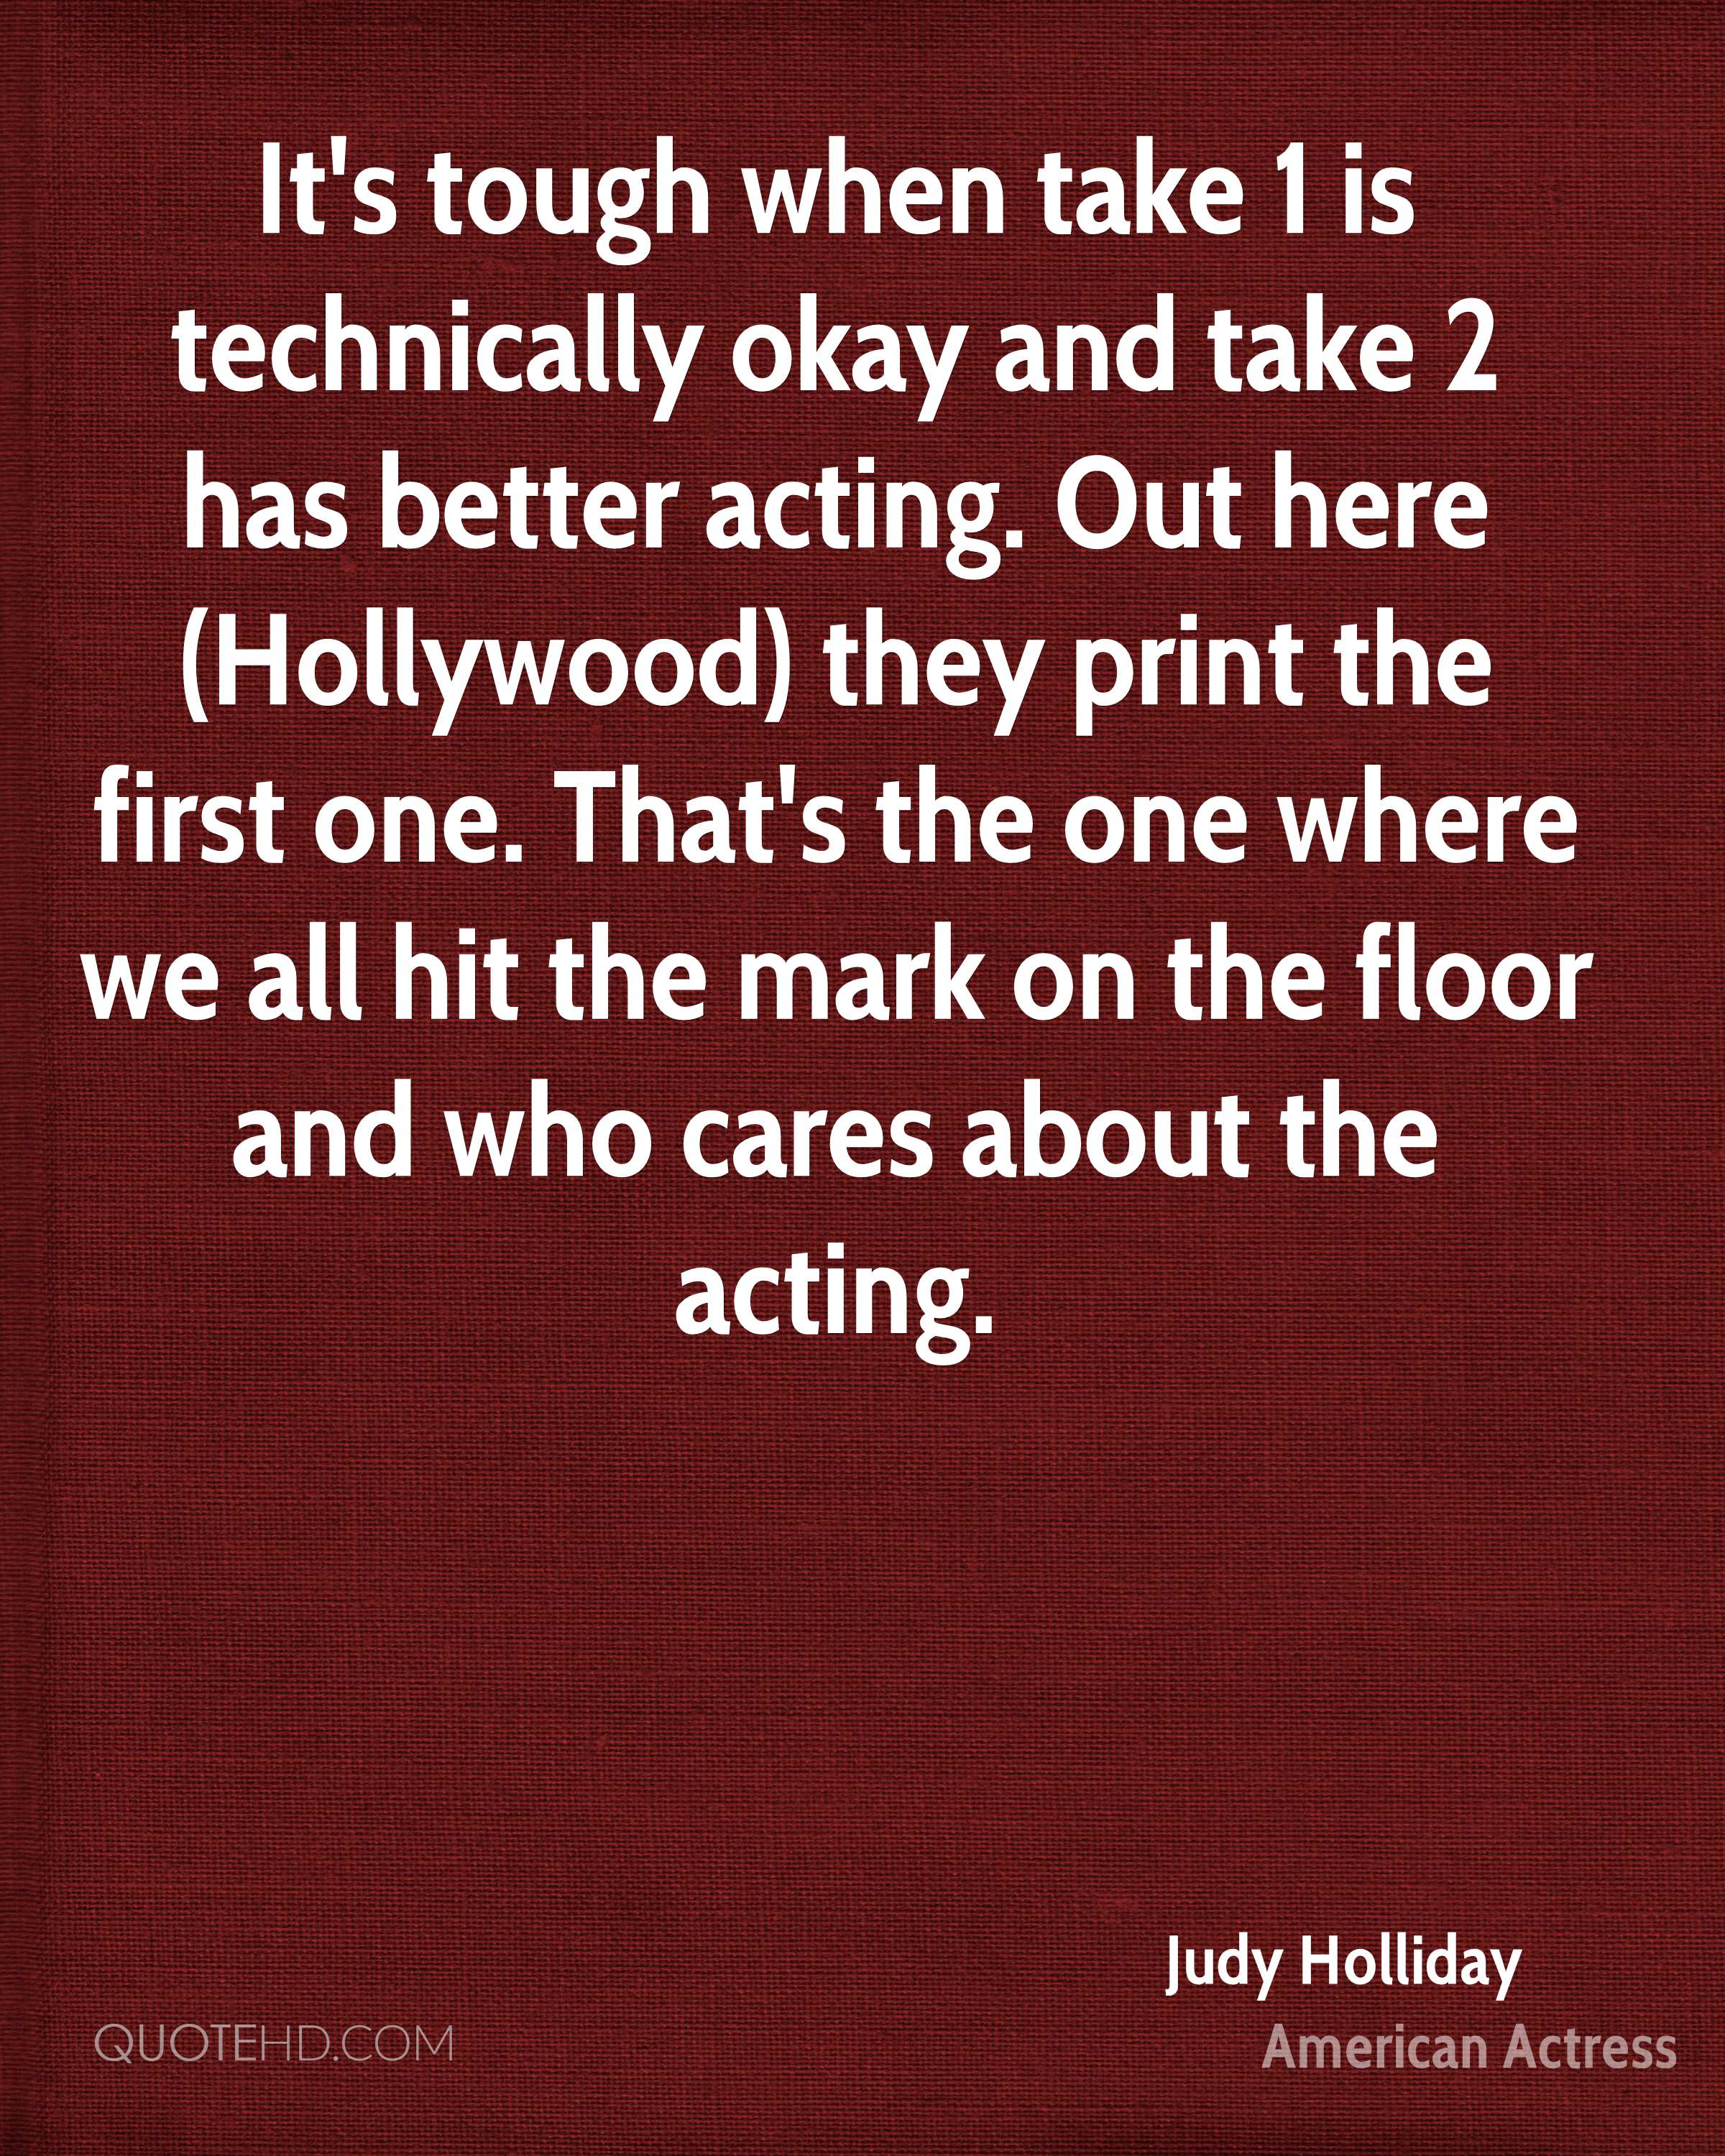 It's tough when take 1 is technically okay and take 2 has better acting. Out here (Hollywood) they print the first one. That's the one where we all hit the mark on the floor and who cares about the acting.